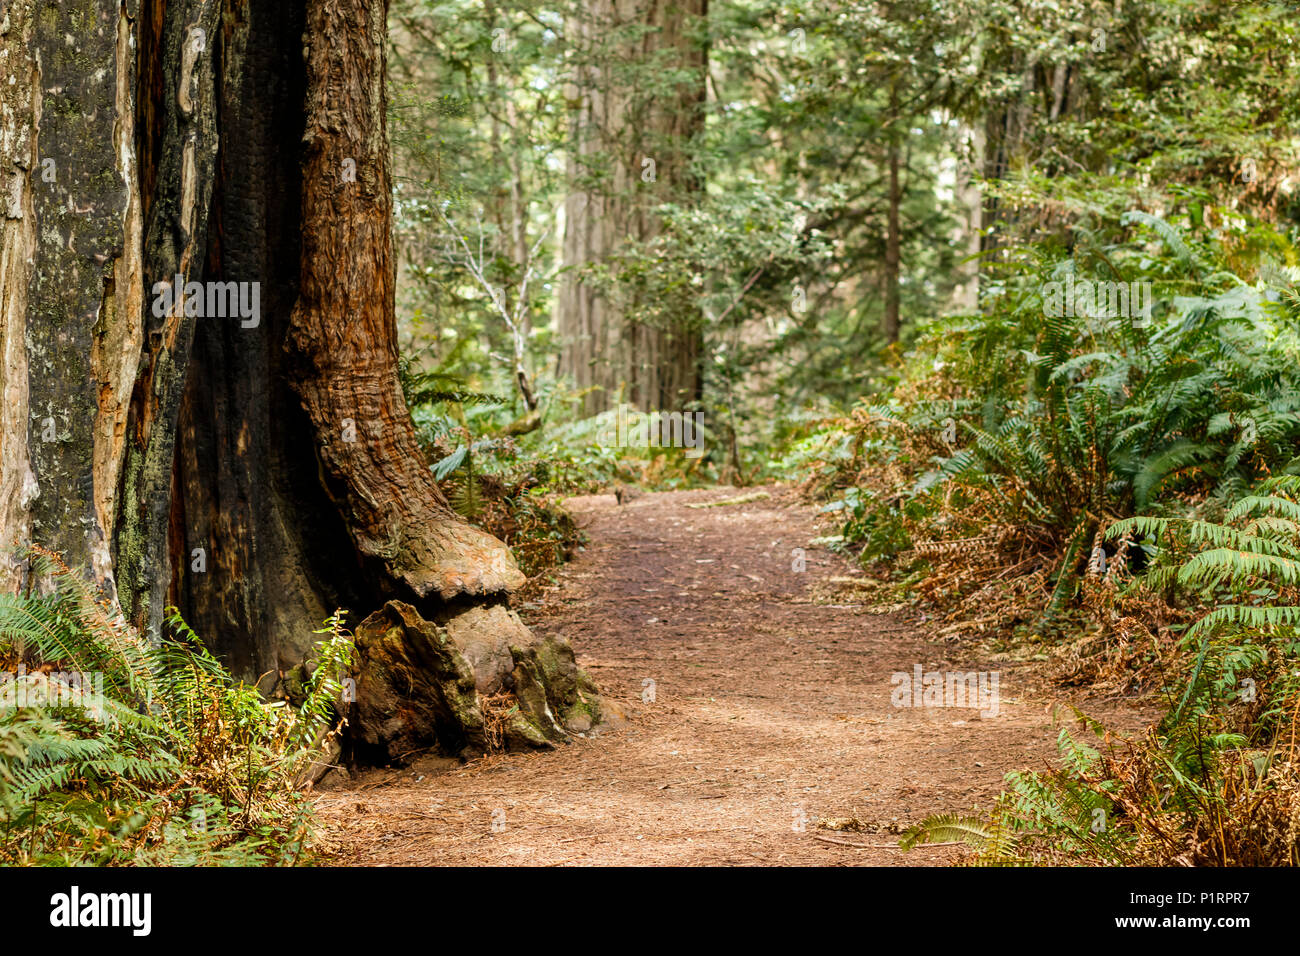 Redwood trees and ferns along a trail, Lady Bird Johnson Grove, Redwood National and State Parks; Orick, California, United States of America Stock Photo